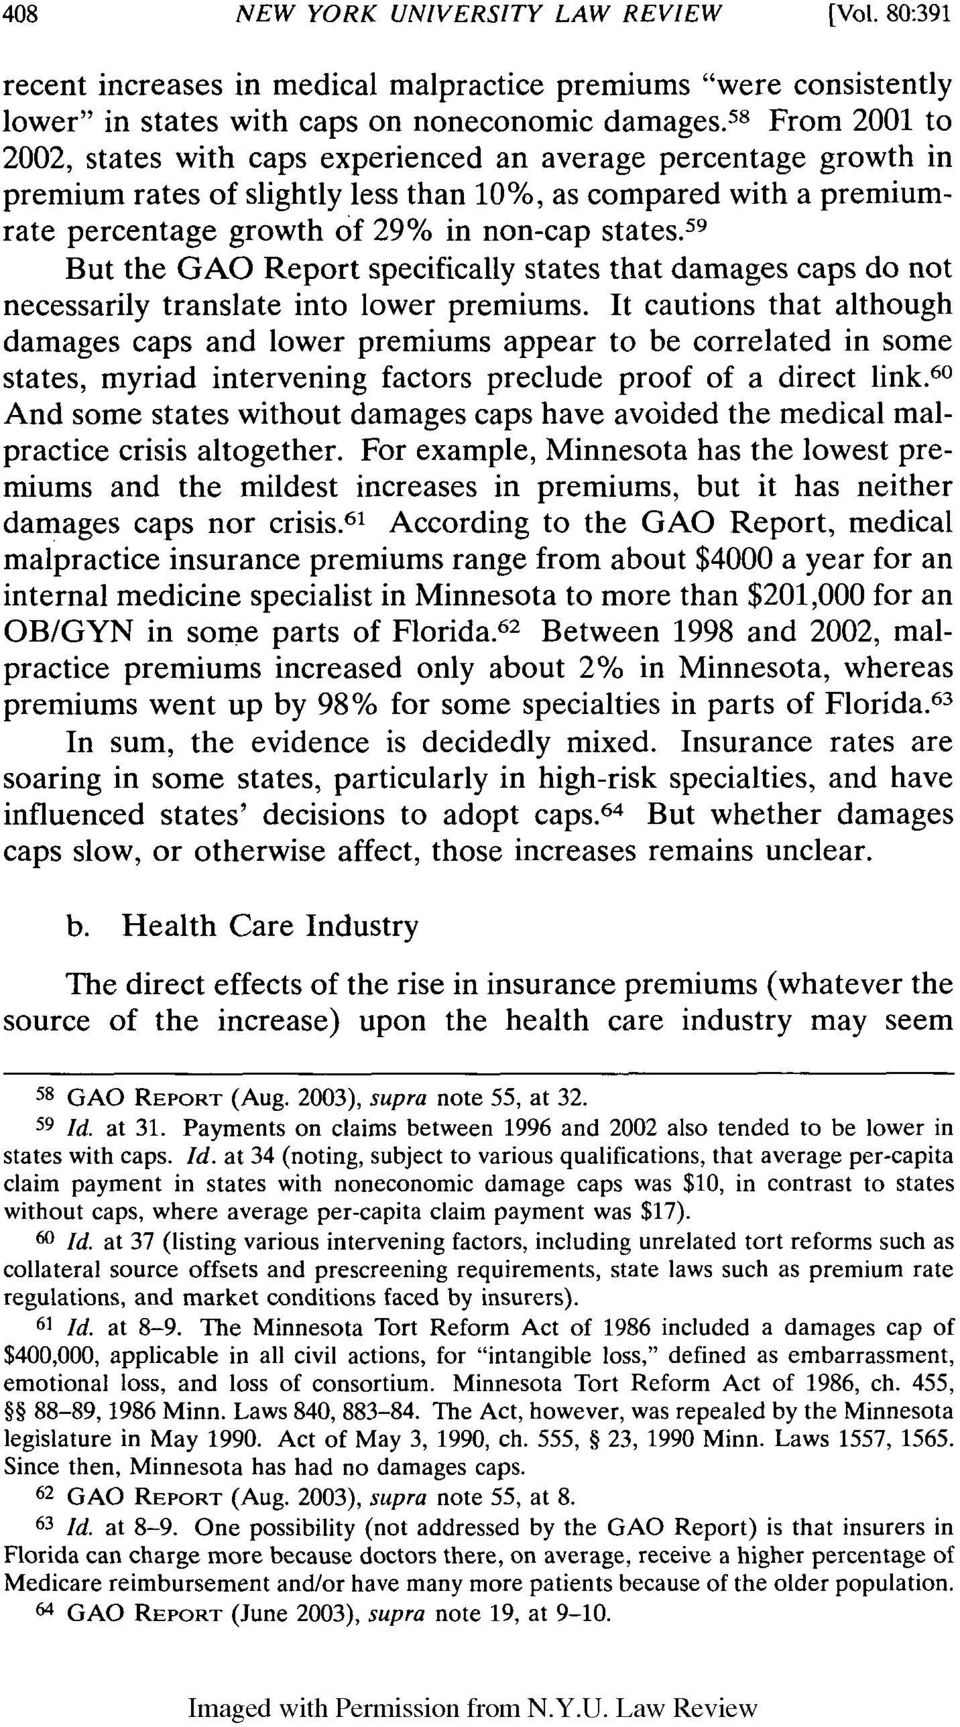 59 But the GAO Report specifically states that damages caps do not necessarily translate into lower premiums.